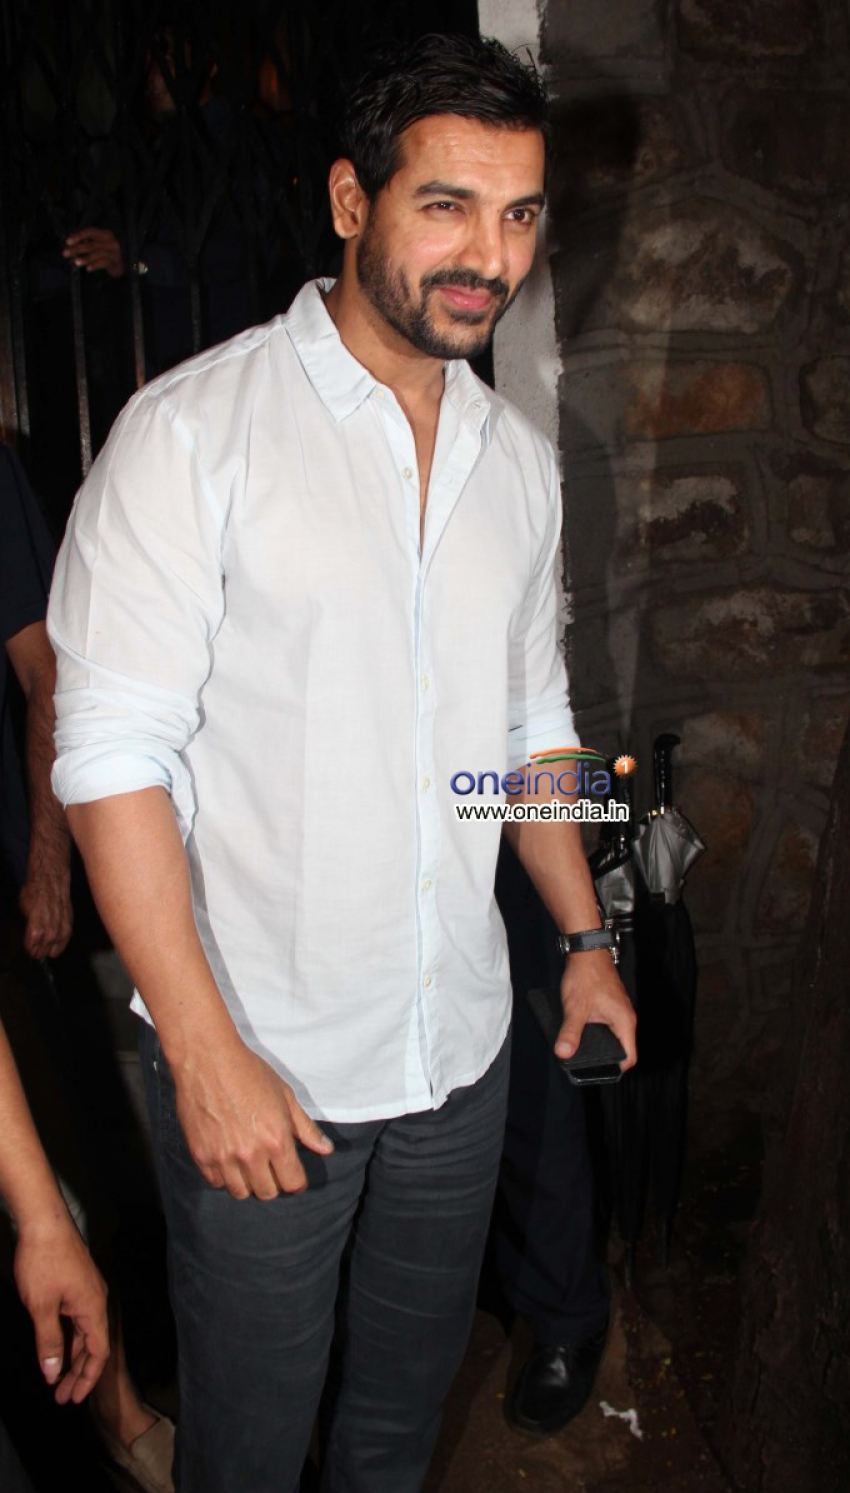 Celebs Snapped at Dewan's New Restaurant Photos